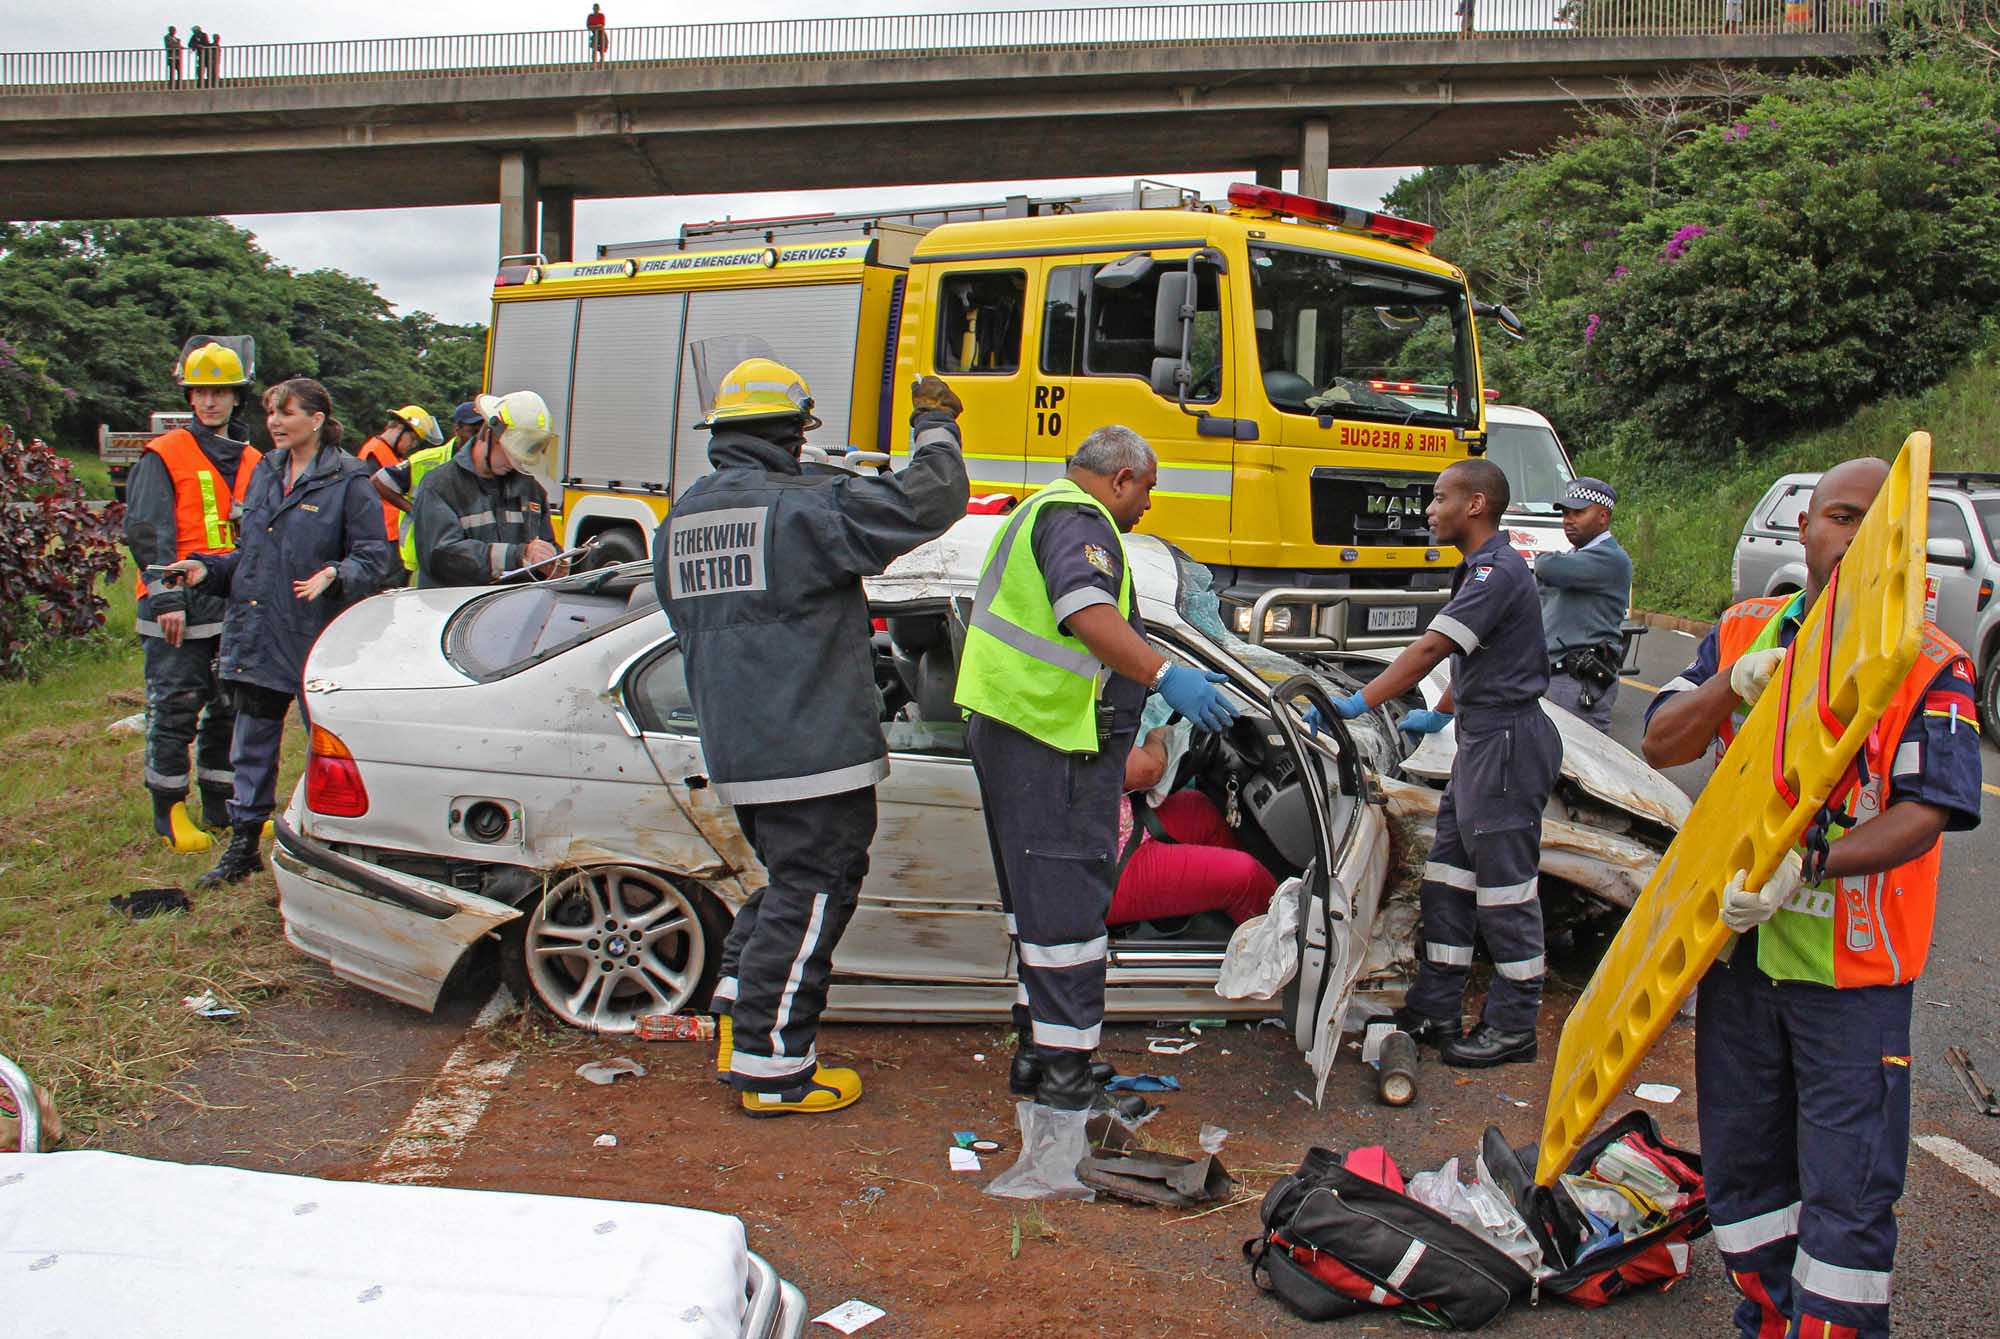 Road Safety & Arrive Alive Blog